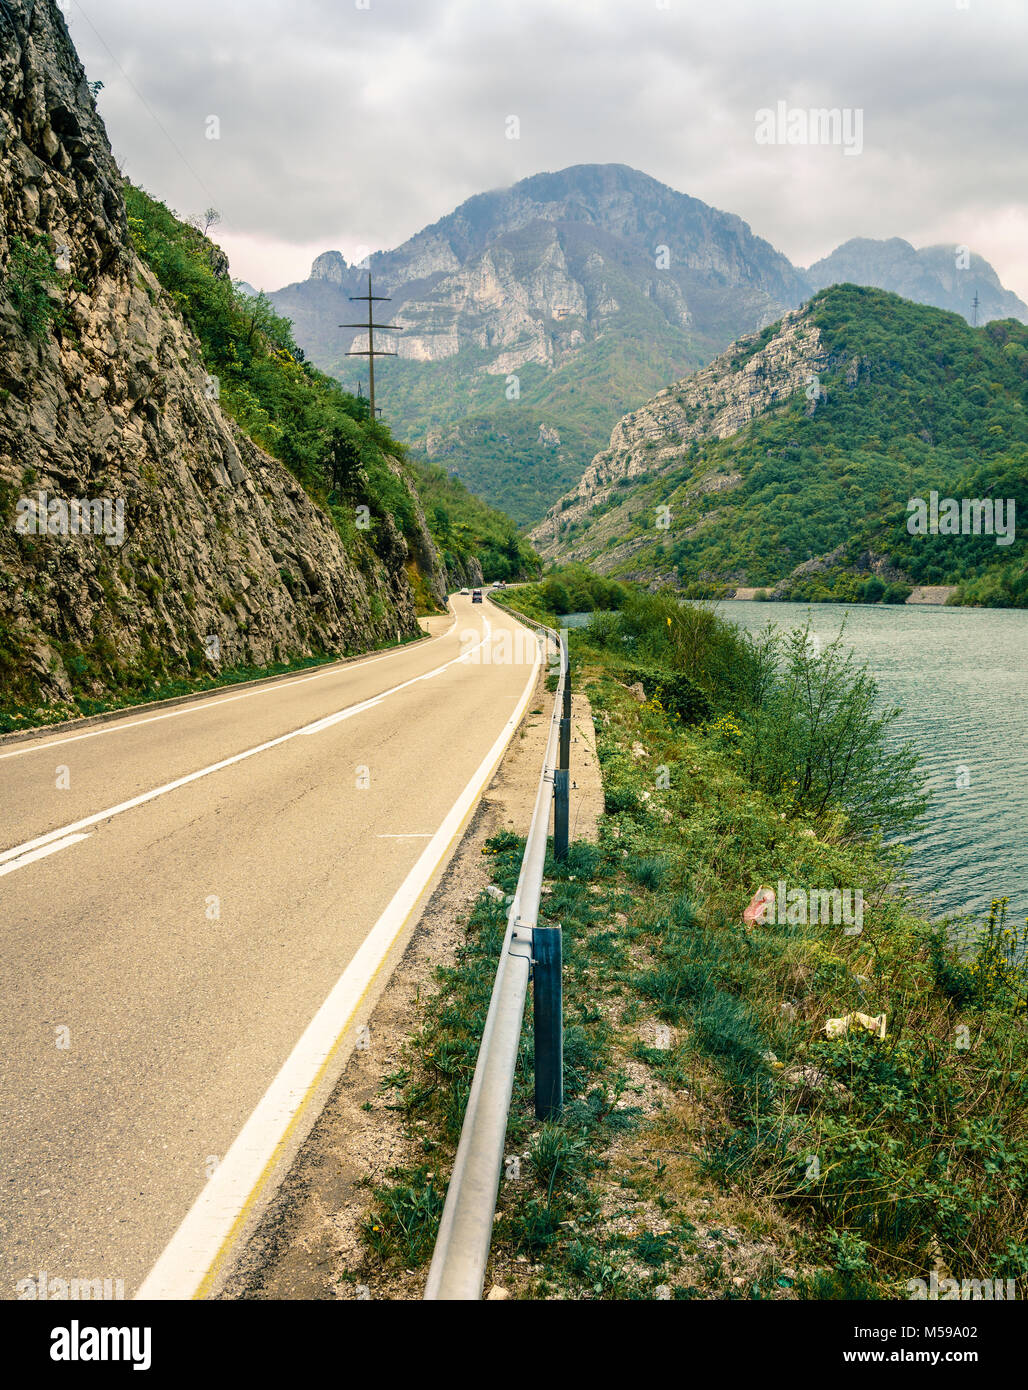 Highway through the mountains along the Neretva River in Bosnia-Herzegovina - Stock Image